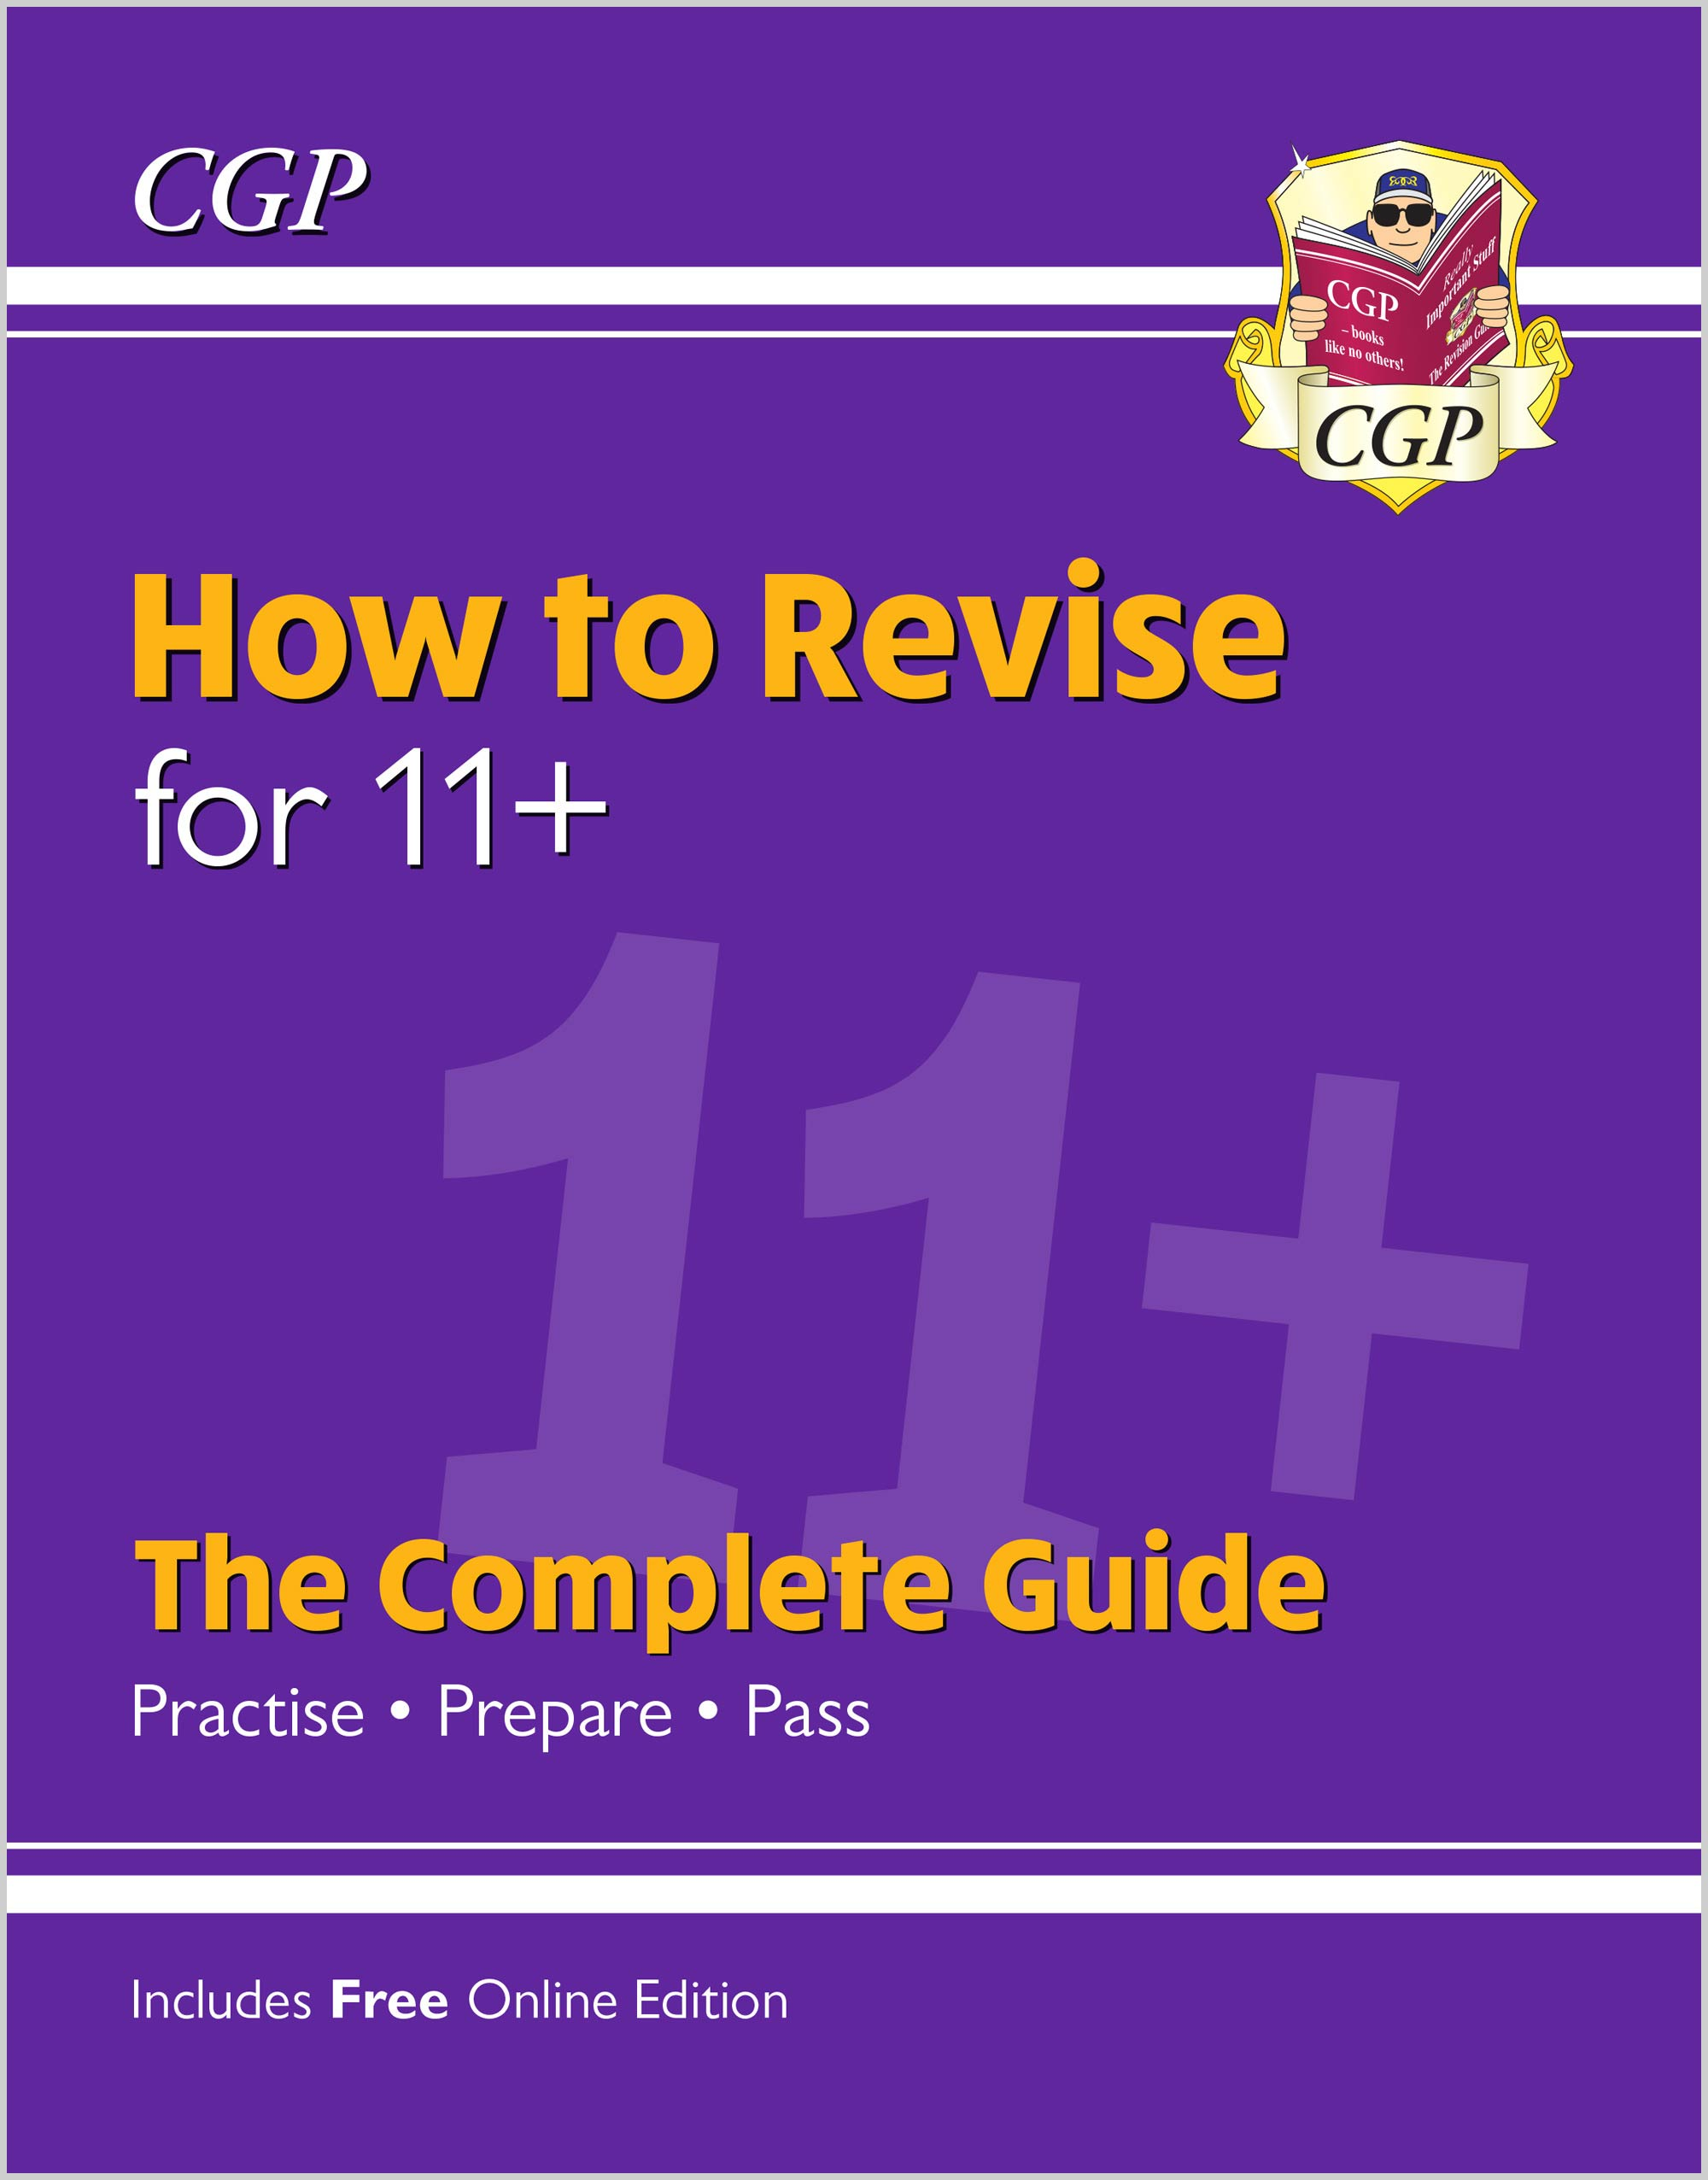 XHRE1 - How to Revise for 11+: The Complete Guide (with Online Edition)